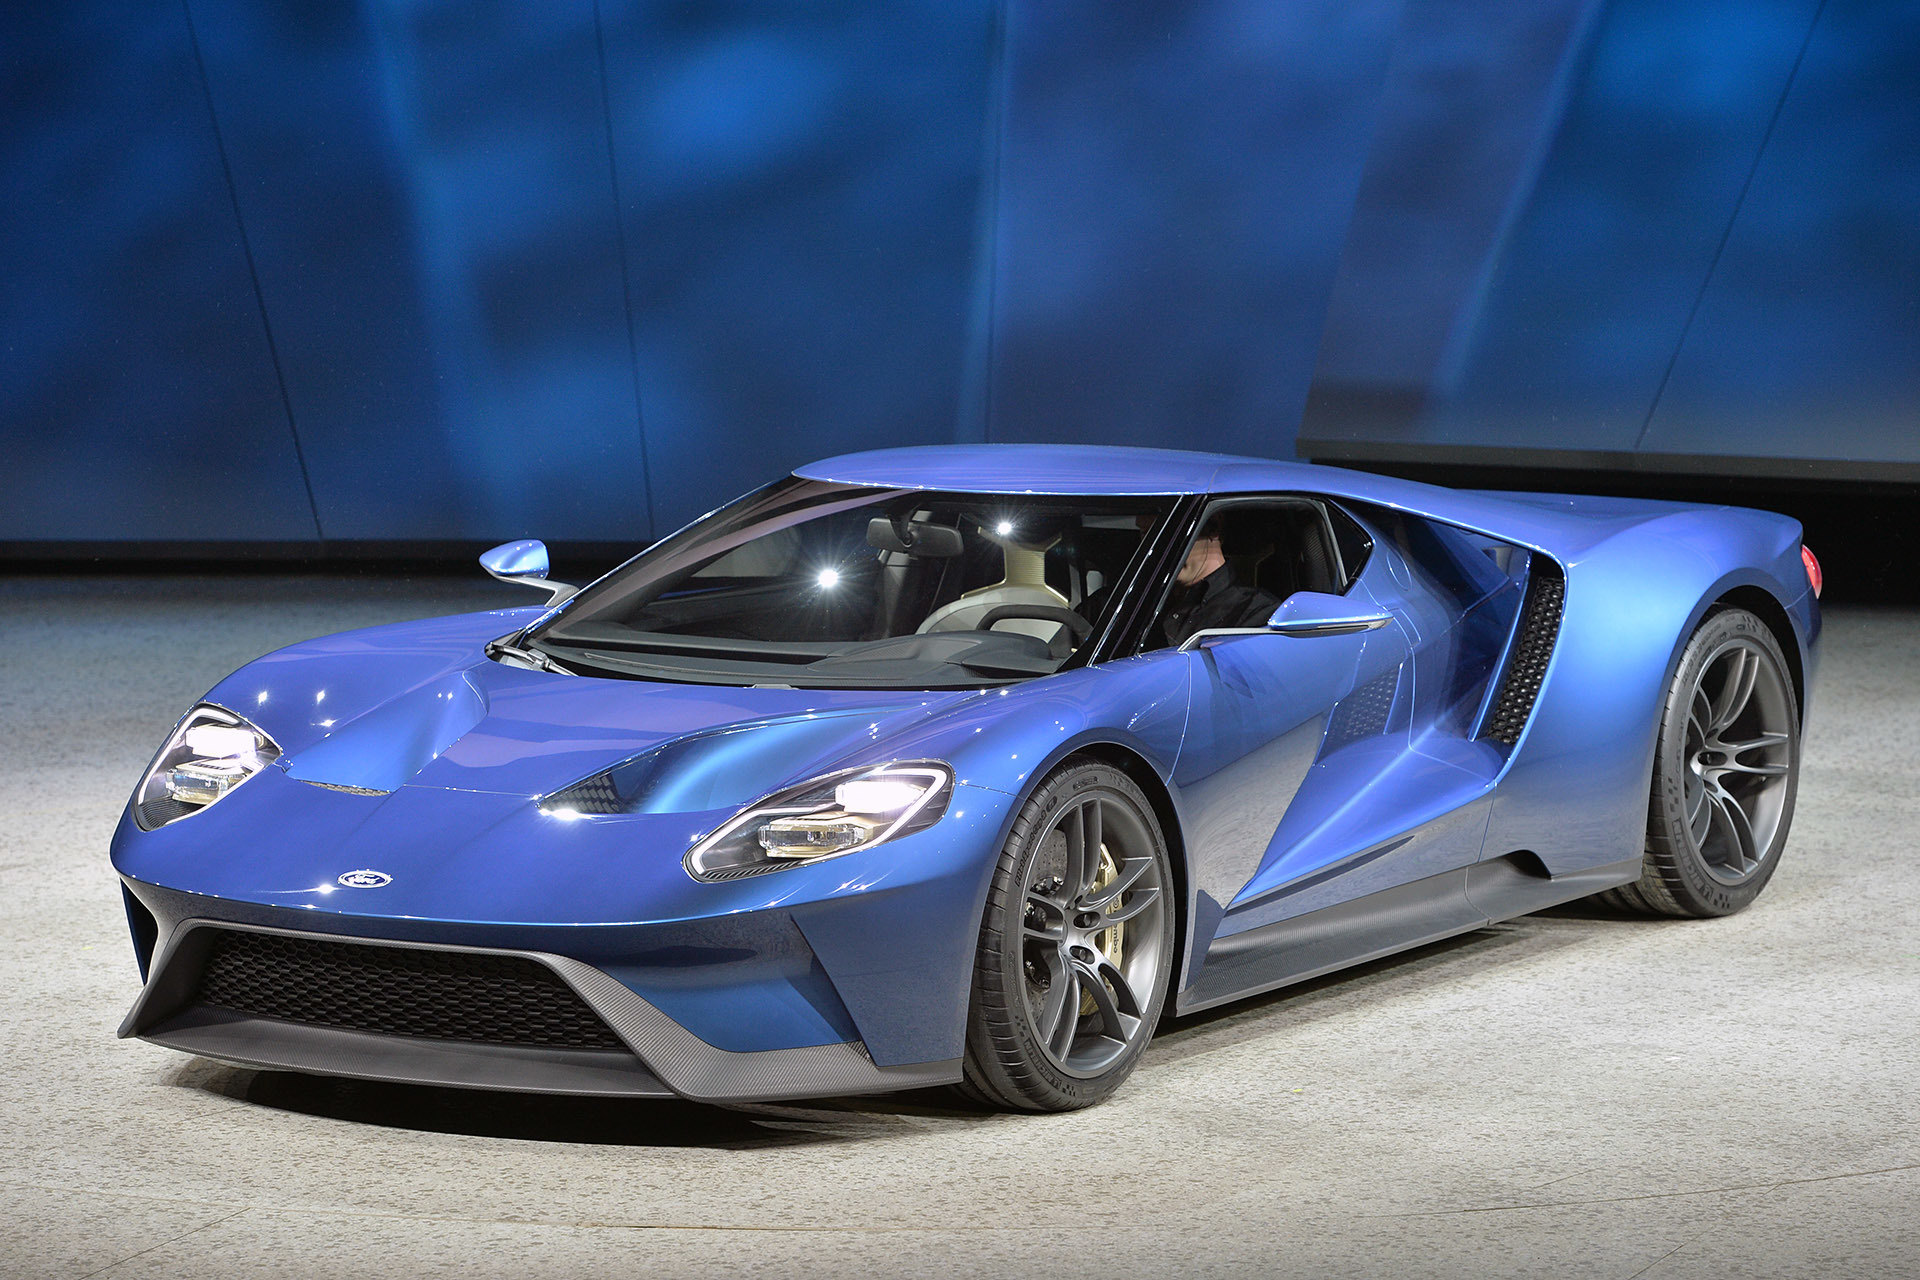 New Ford GT 2016 Supercar Concept